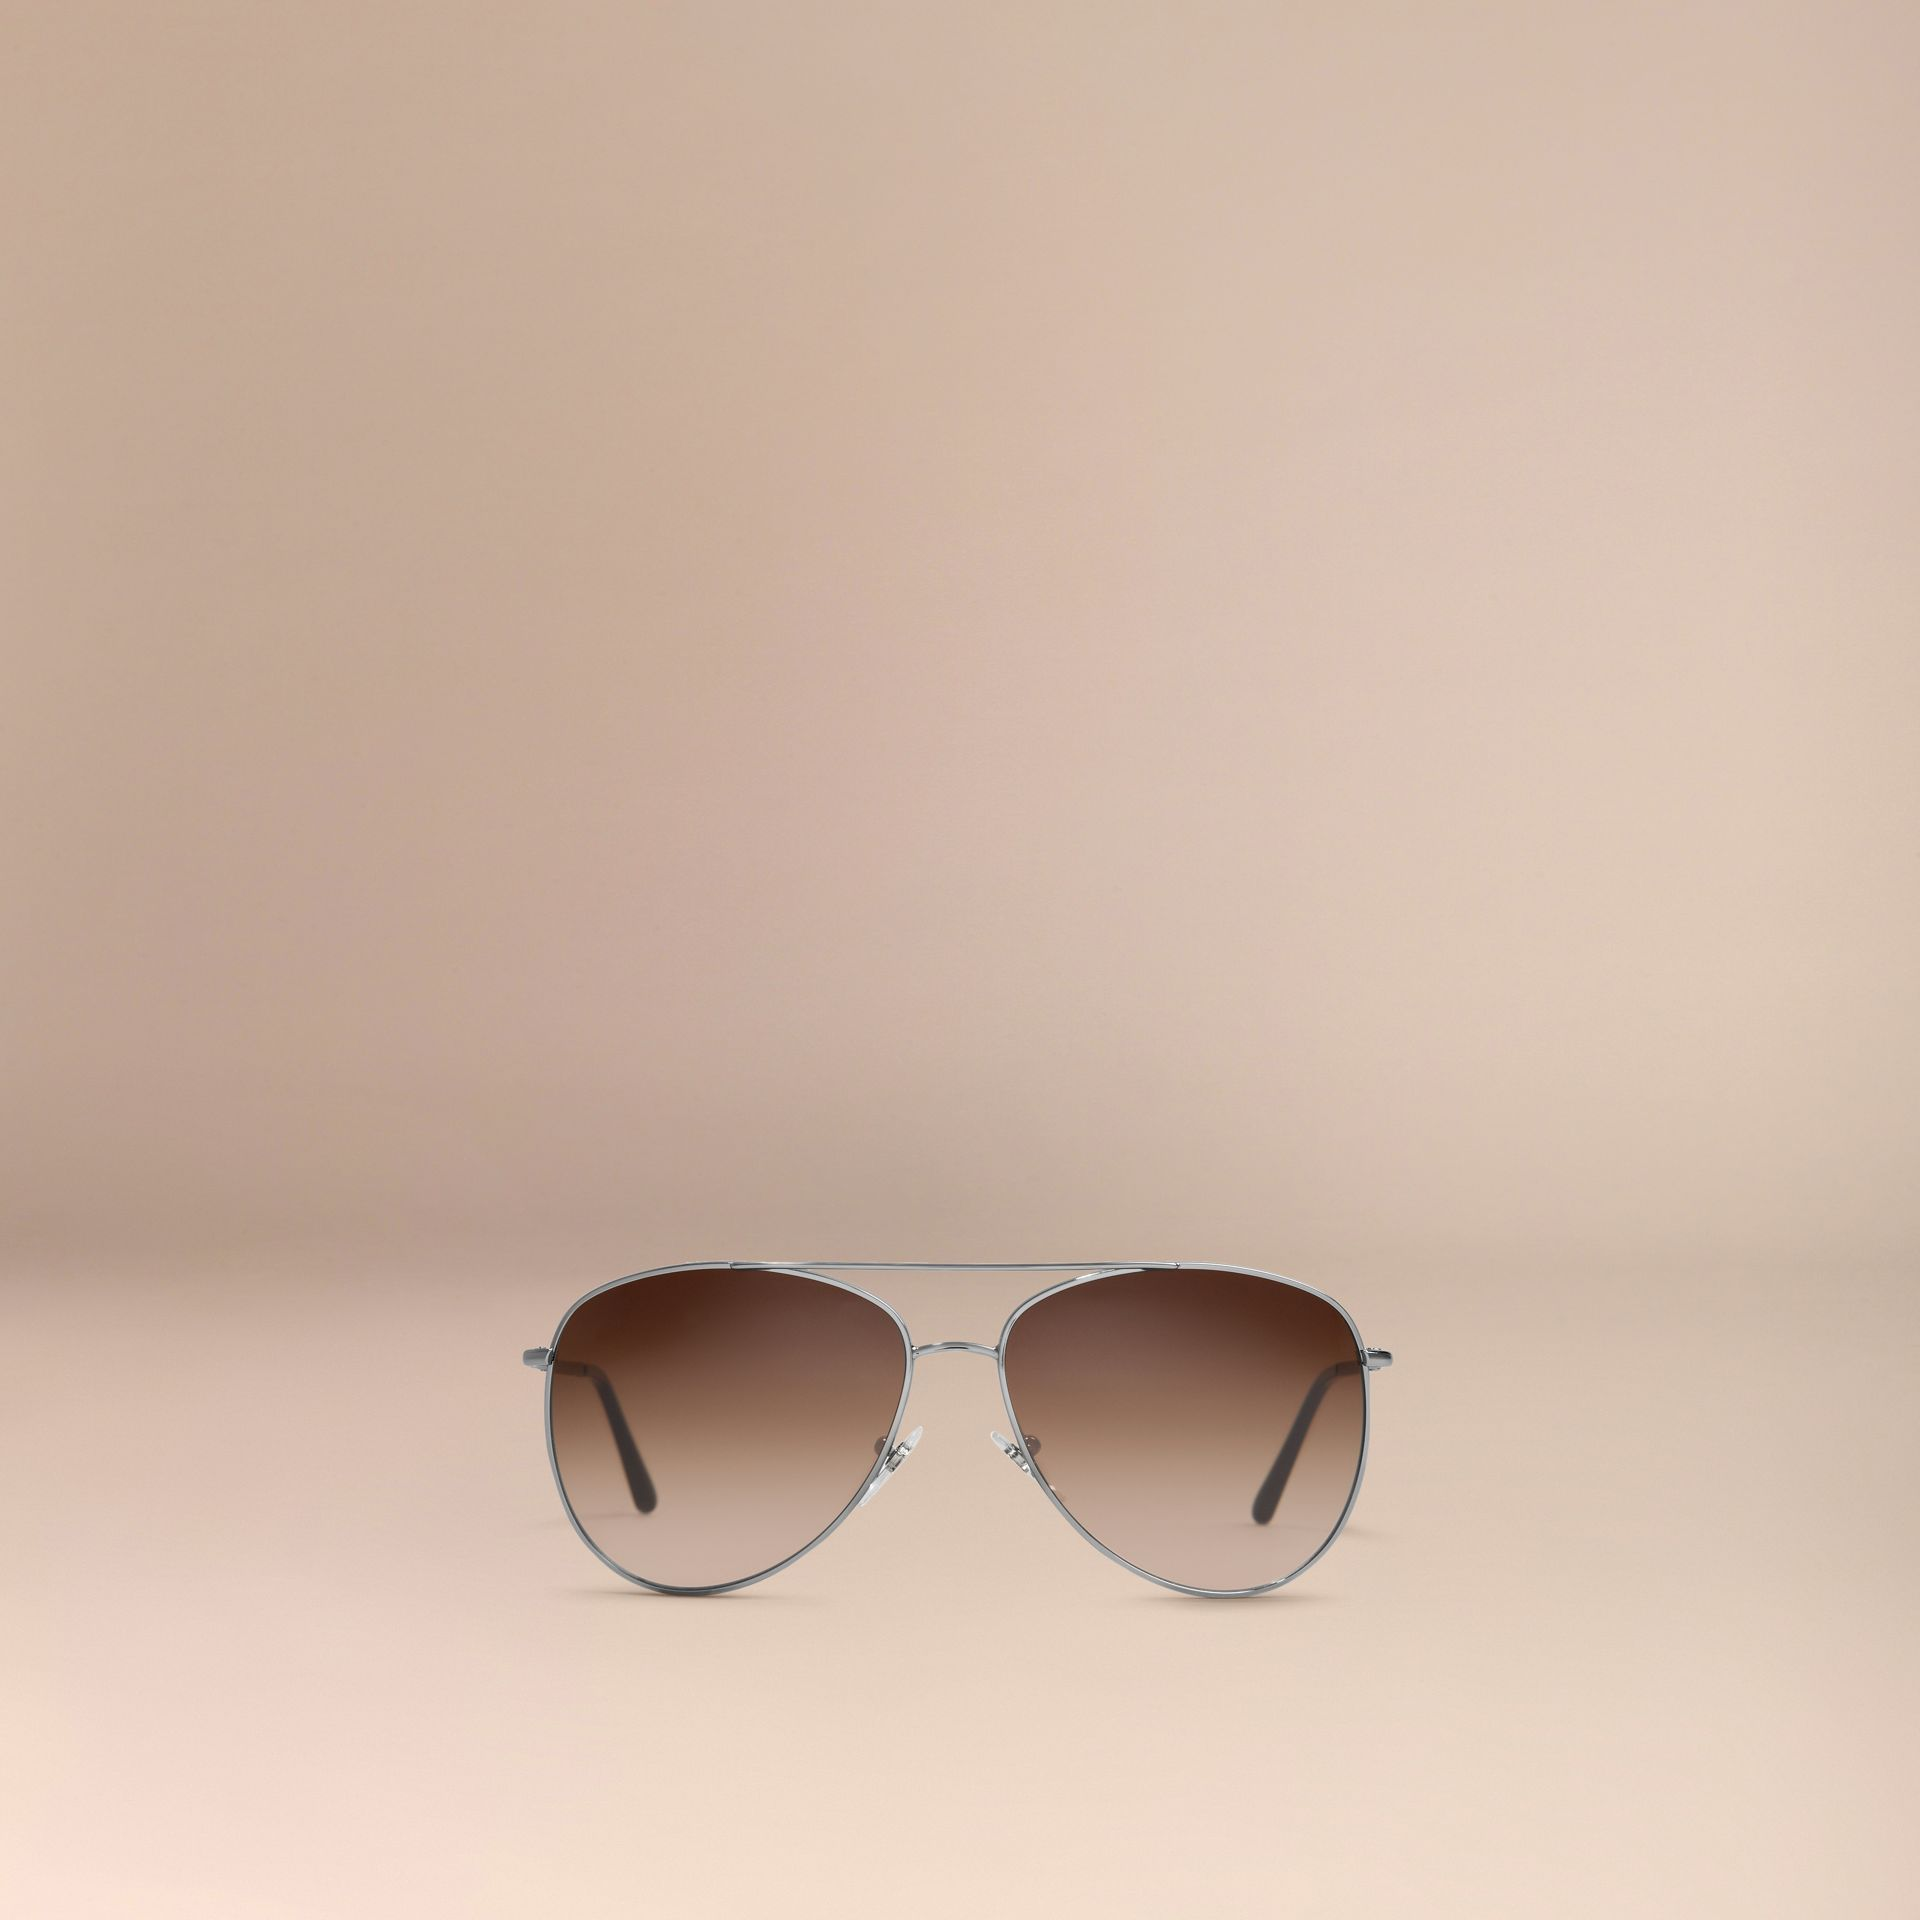 Nickel Lunettes de soleil Aviator avec branches en check Nickel - photo de la galerie 4